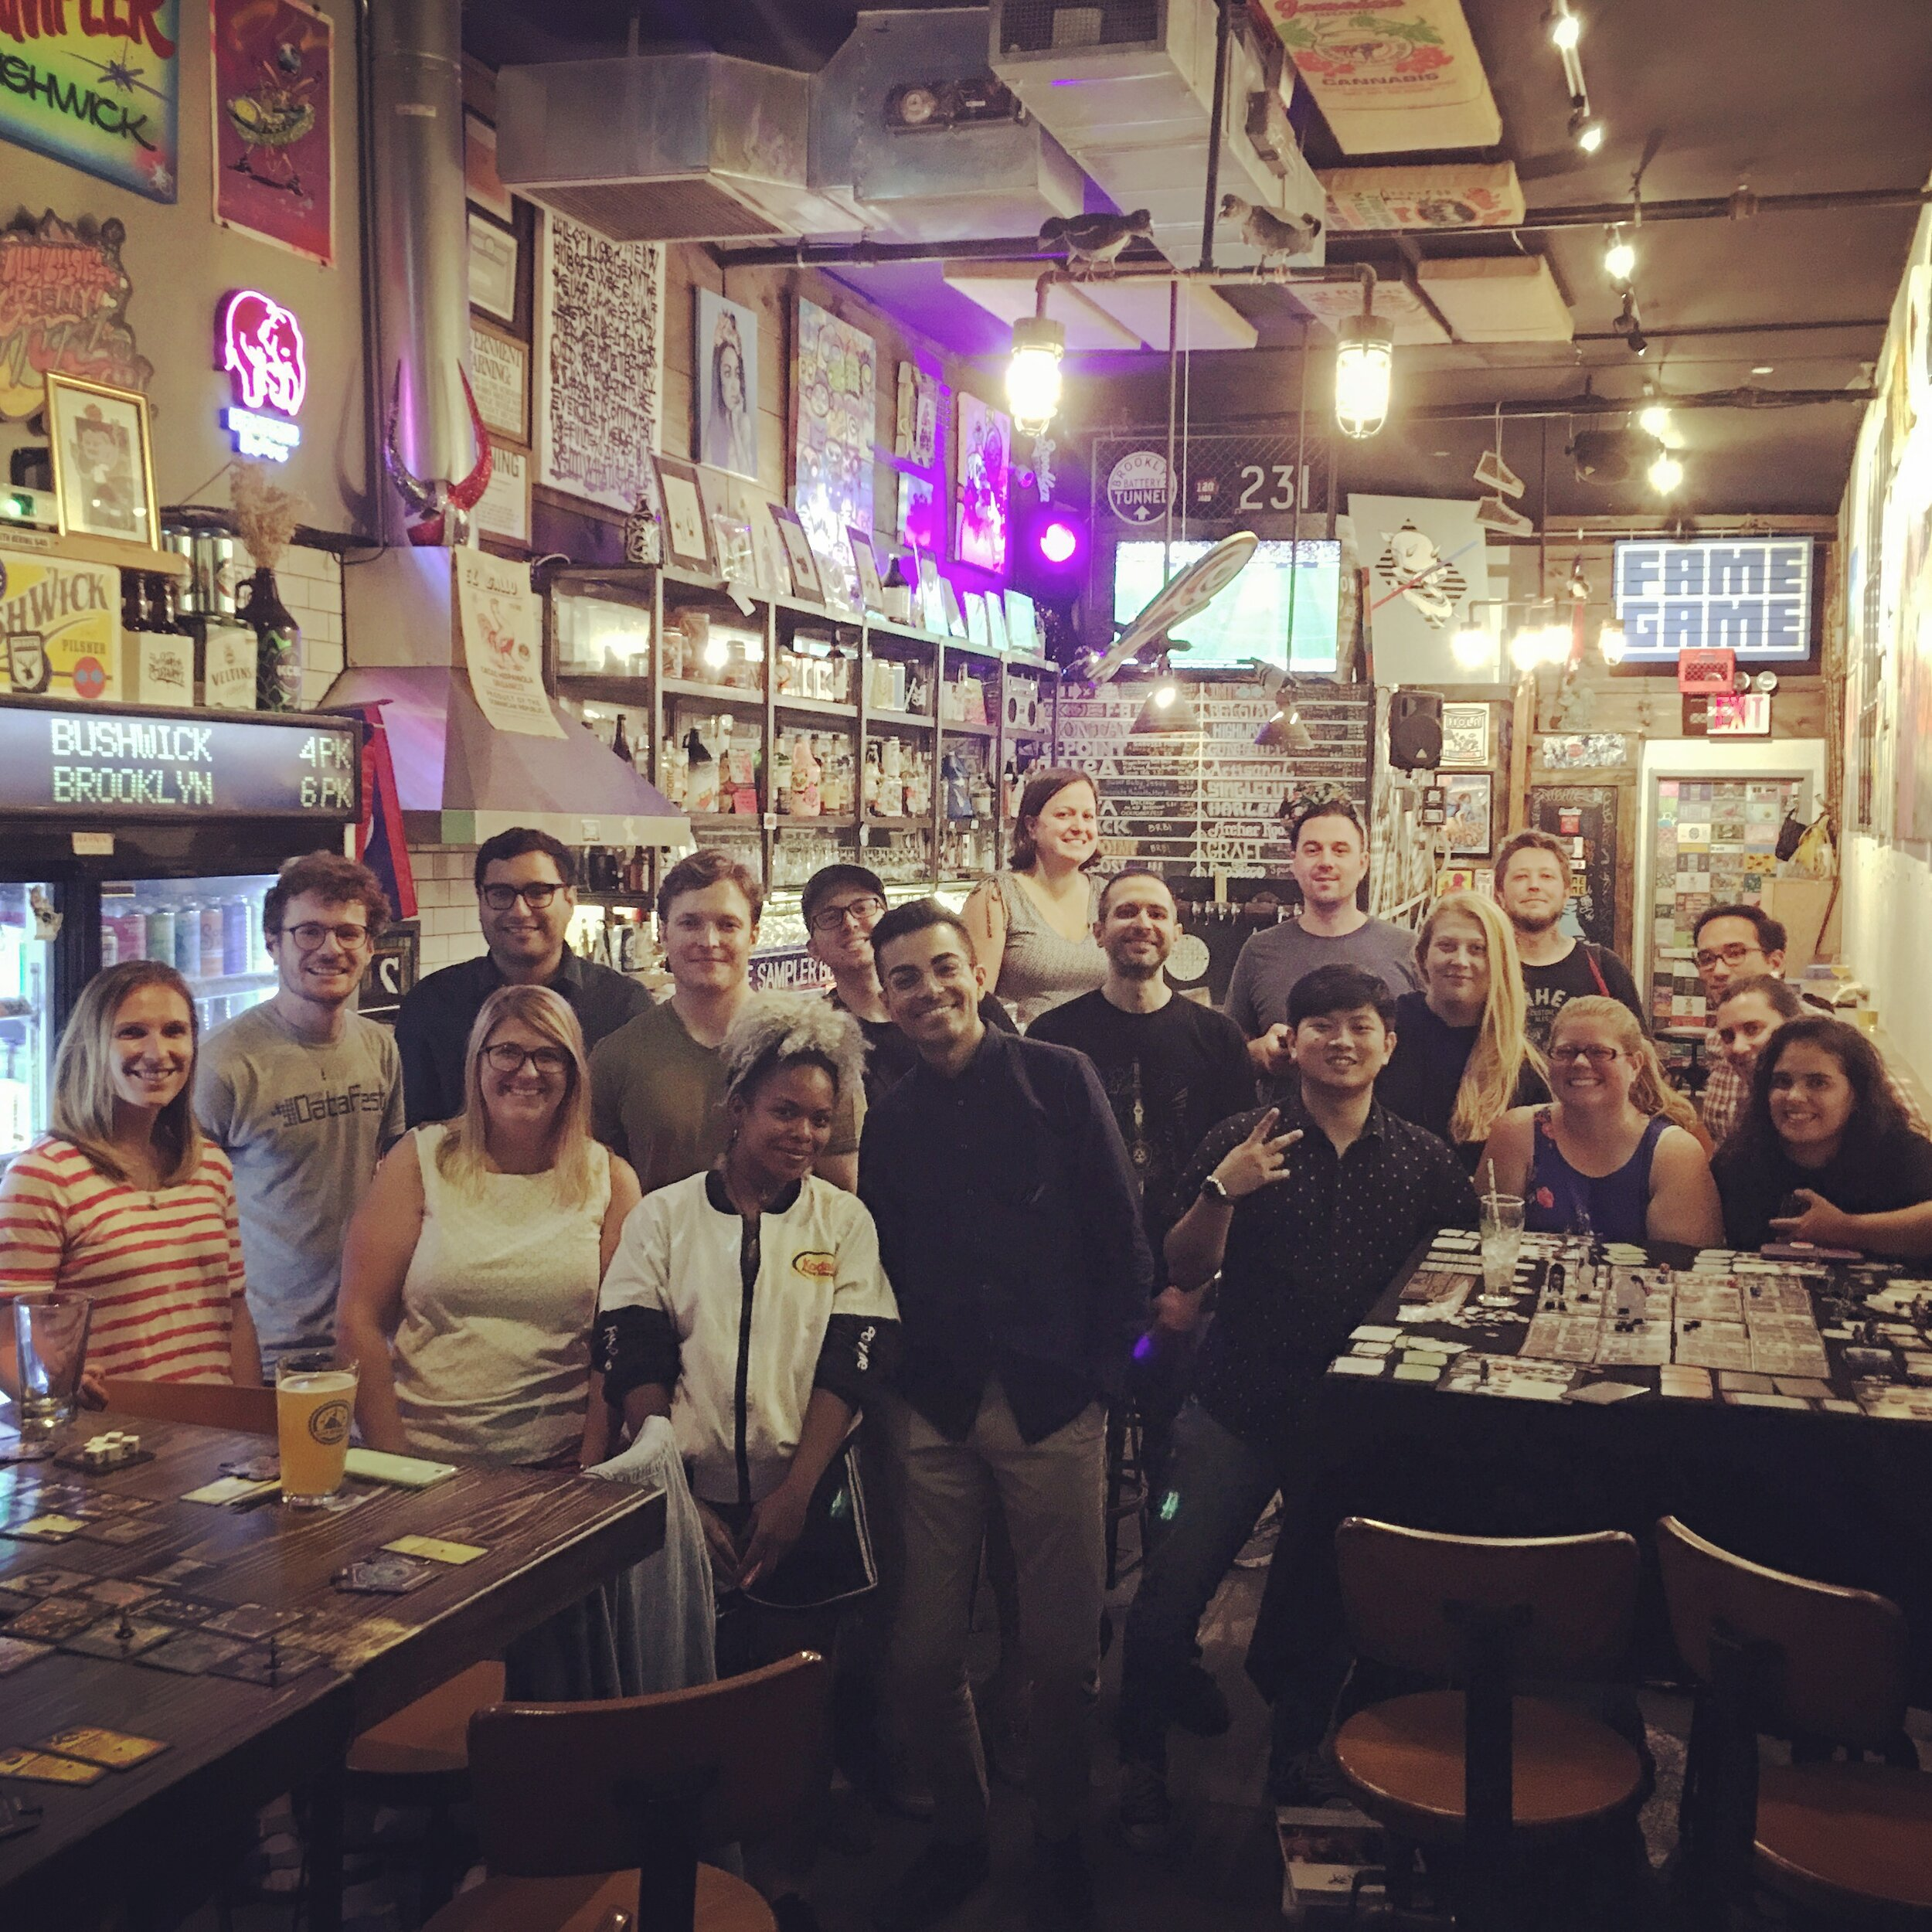 Members of Brew N Boards pose for our traditional event photo during a game night at The Sampler in Bushwick on September 3rd, 2019.